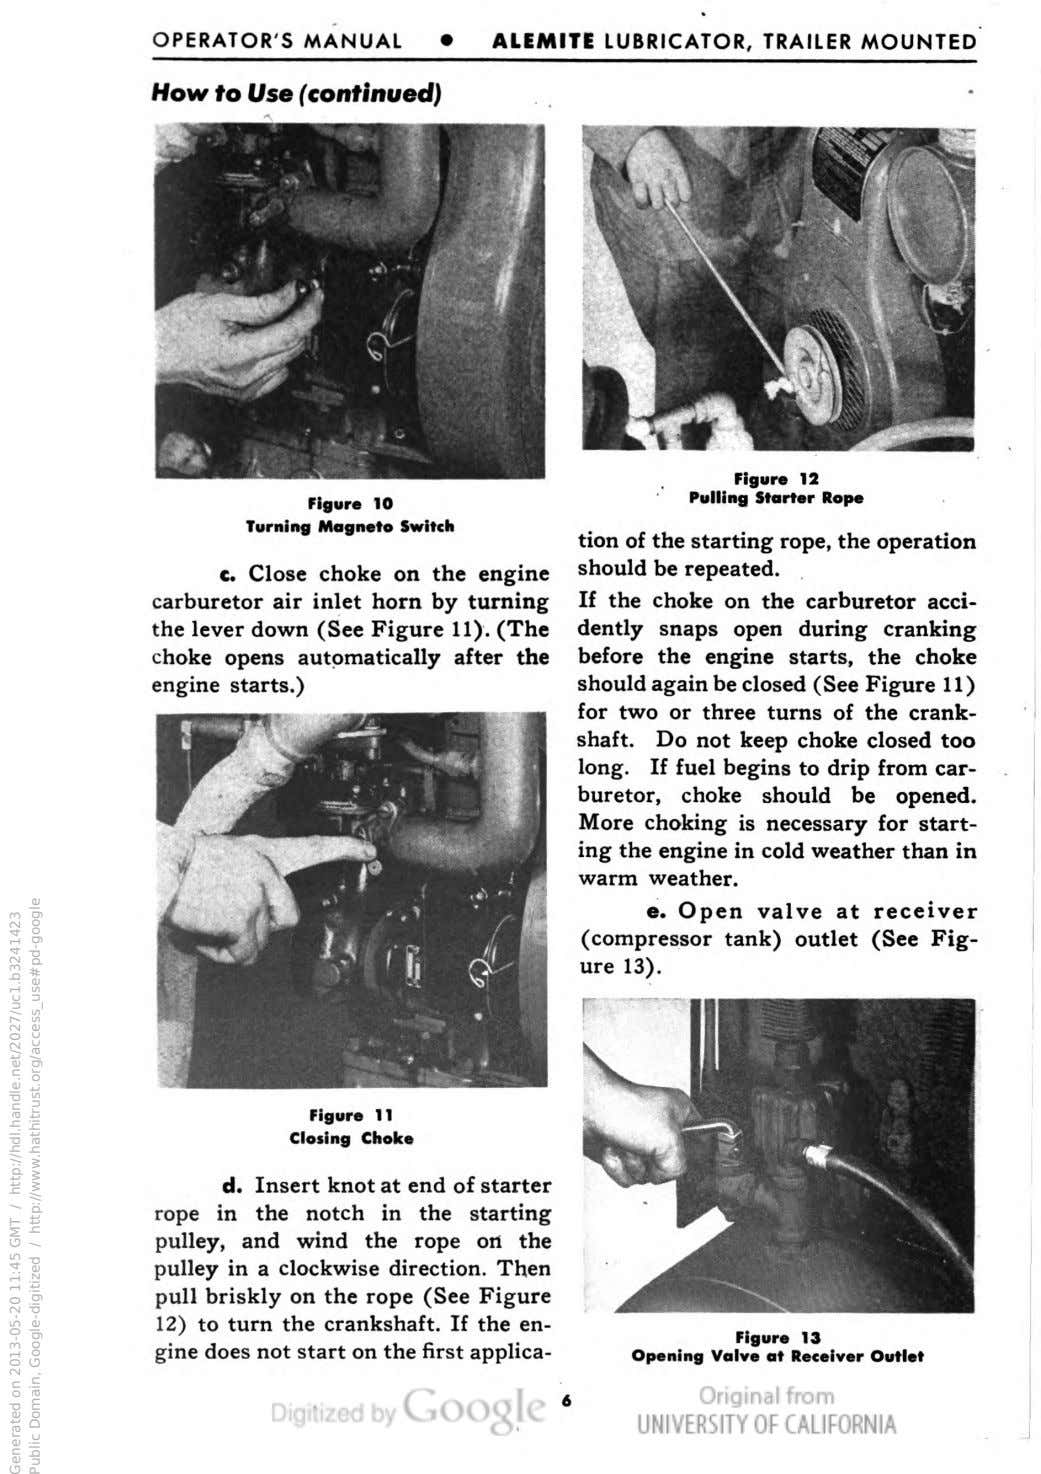 OPERATOR'S MANUAL ALEMITE LUBRICATOR, TRAILER MOUNTED How to Use (continued) Figure 10 Turning Magneto Switch